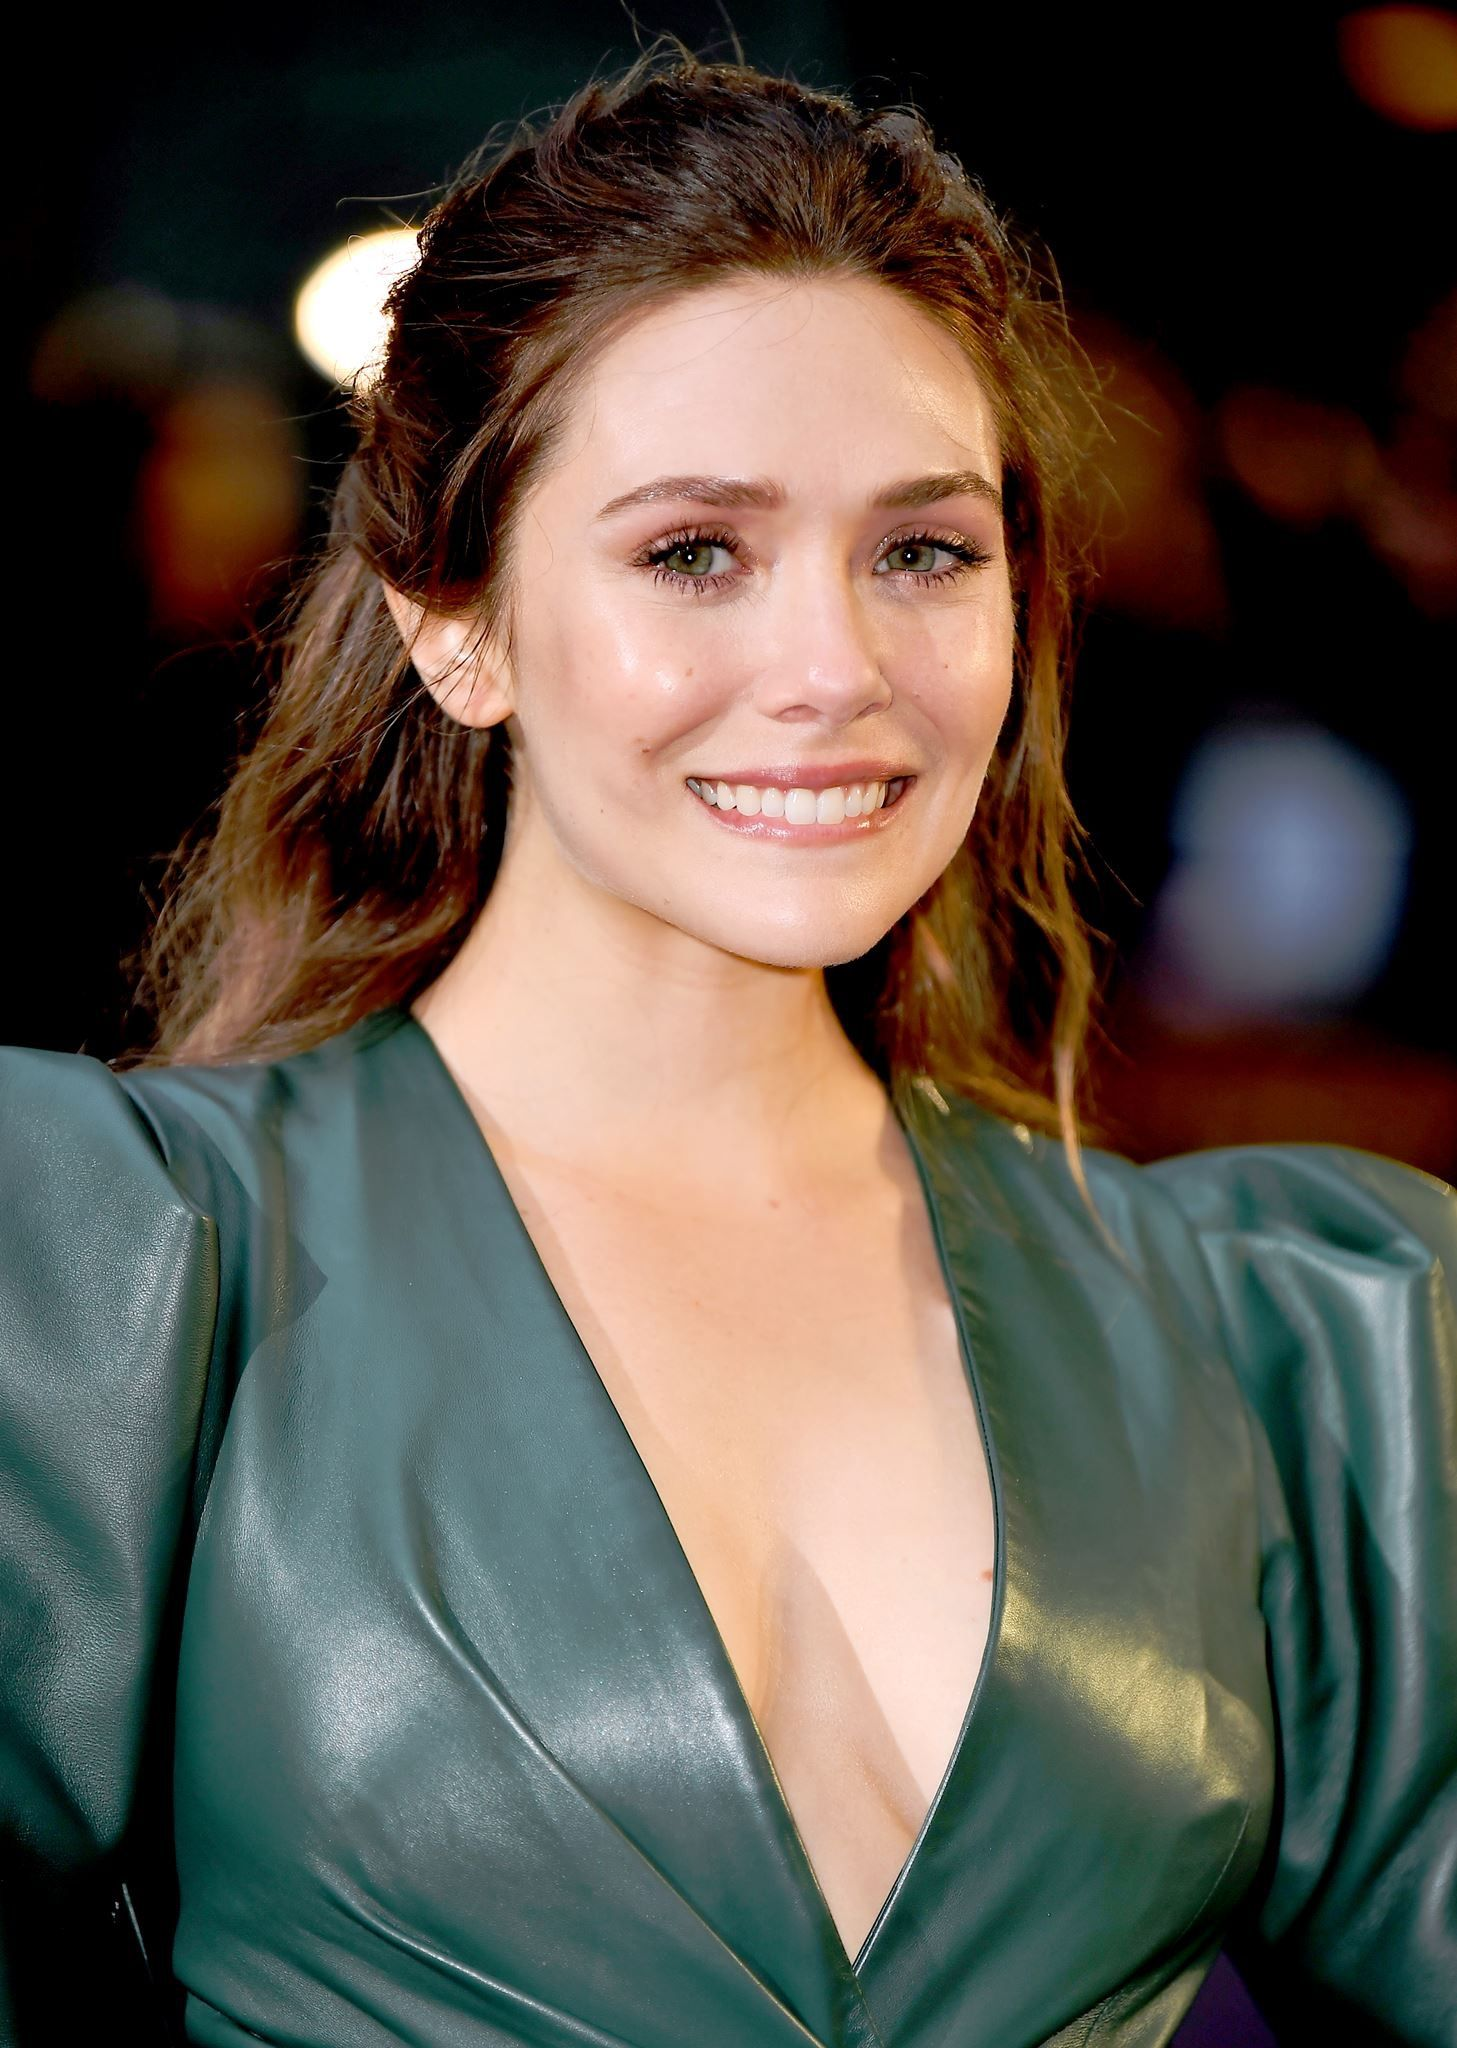 Beautiful Elizabeth Olsen So Why Mot Most People Would Have Forgotten But I Love The Women I Have Known Elizabeth Olsen Elizabeth Olsen Scarlet Witch Olsen